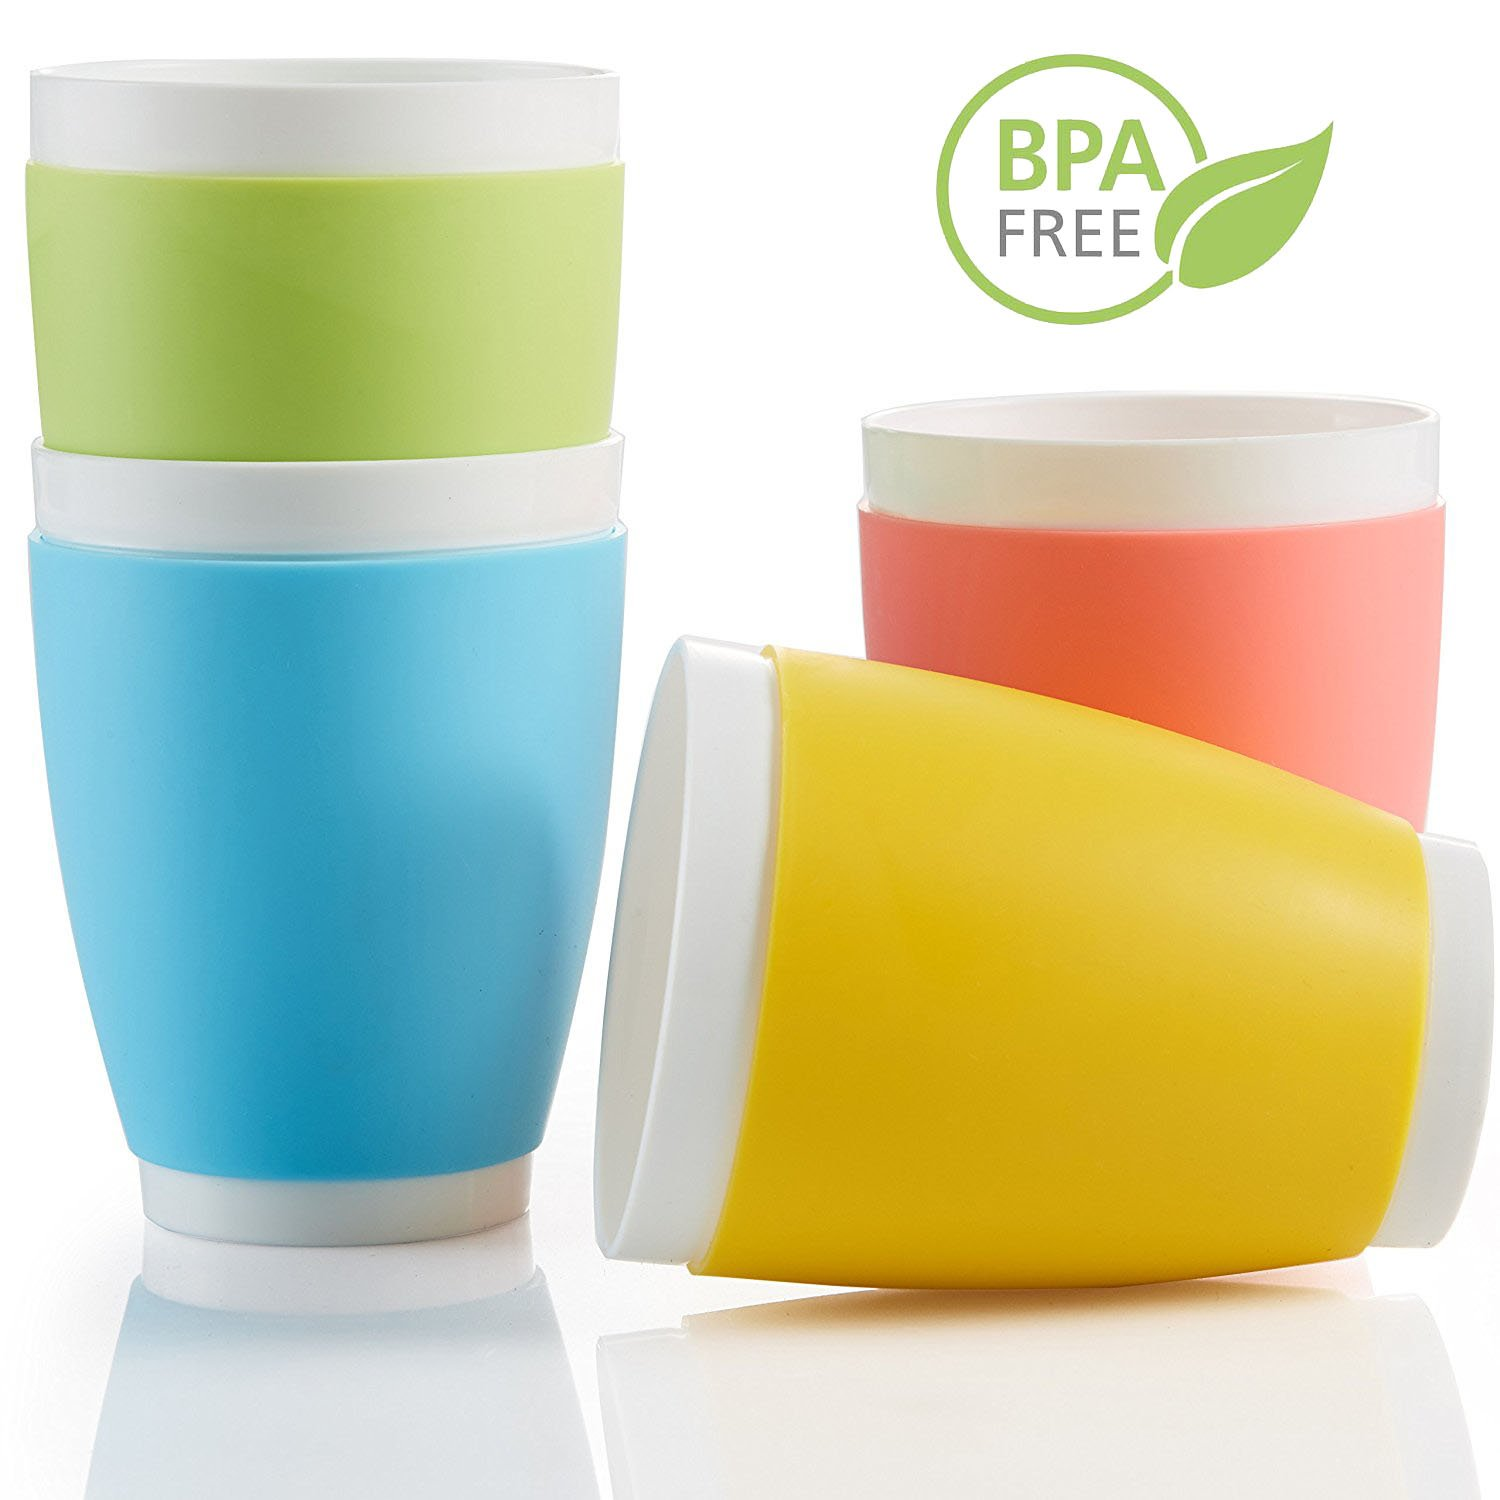 Toddler Cups, Microwave and Dishwasher Safe, 160 Pack Assorted Colors